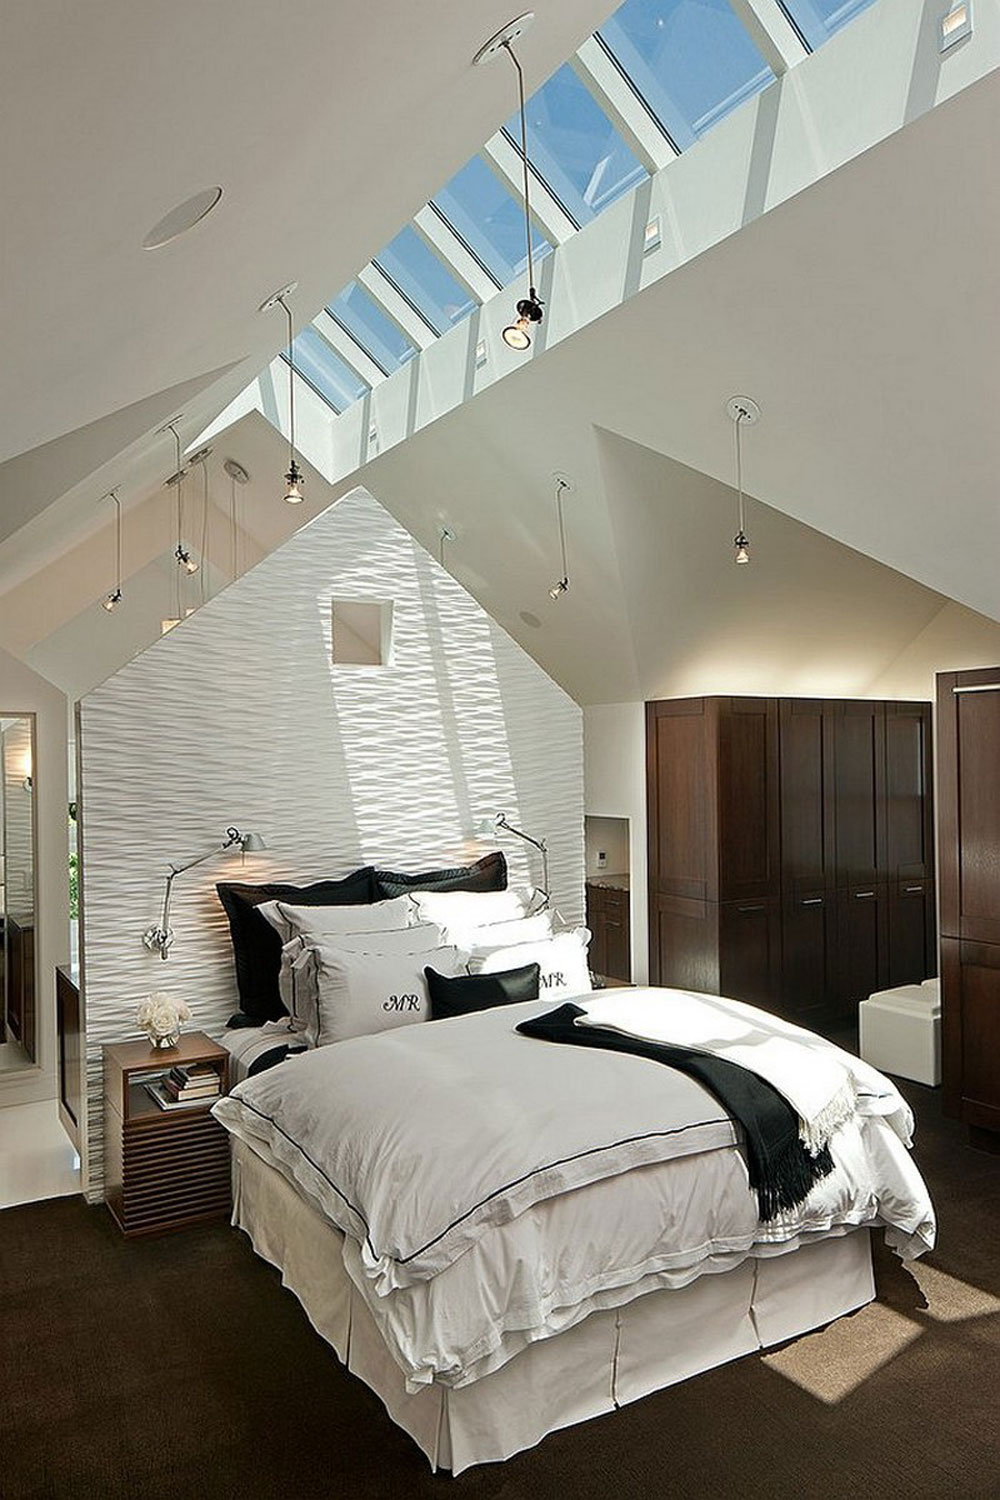 Skylight Designs Skylight Home Design Ideas For A Better Life